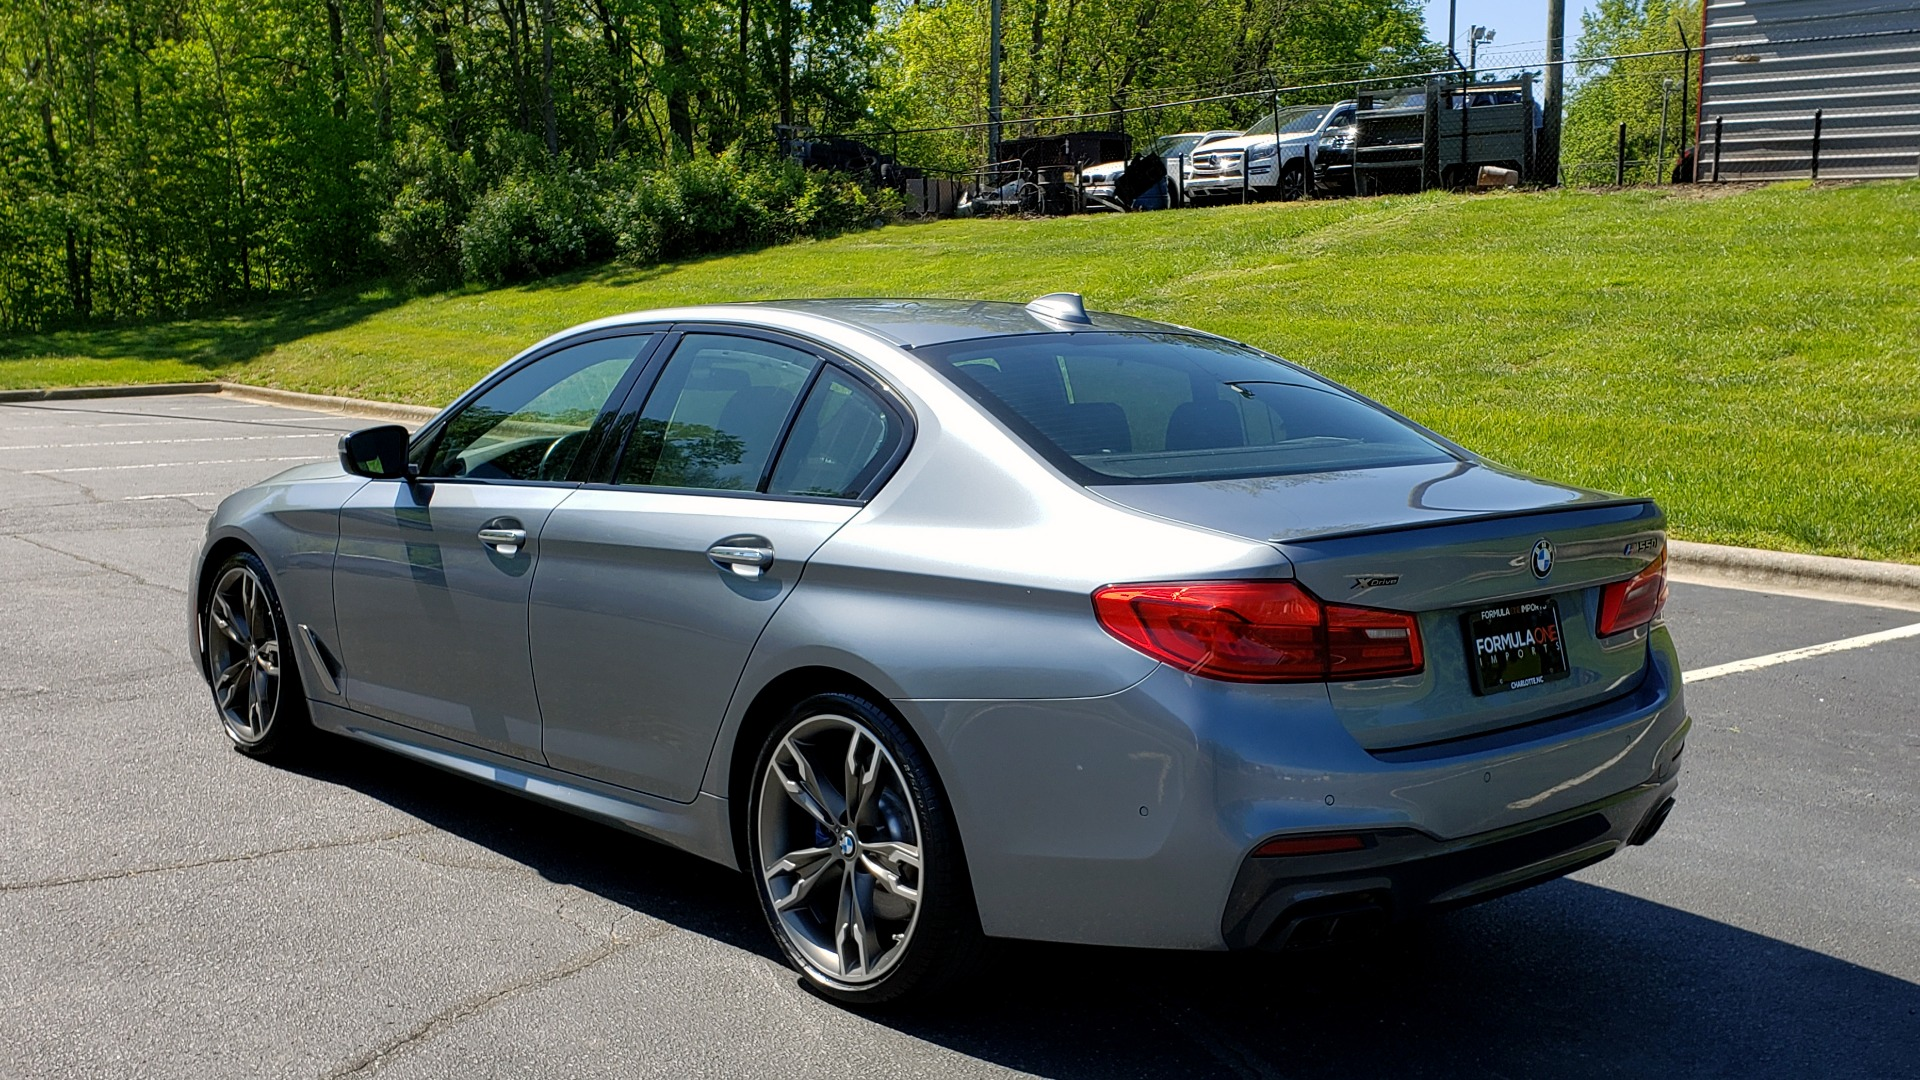 Used 2018 BMW 5 SERIES M550I XDRIVE / EXEC PKG / LUX / DRVR ASST / CLD WTHR / ACTIVE DR for sale Sold at Formula Imports in Charlotte NC 28227 3